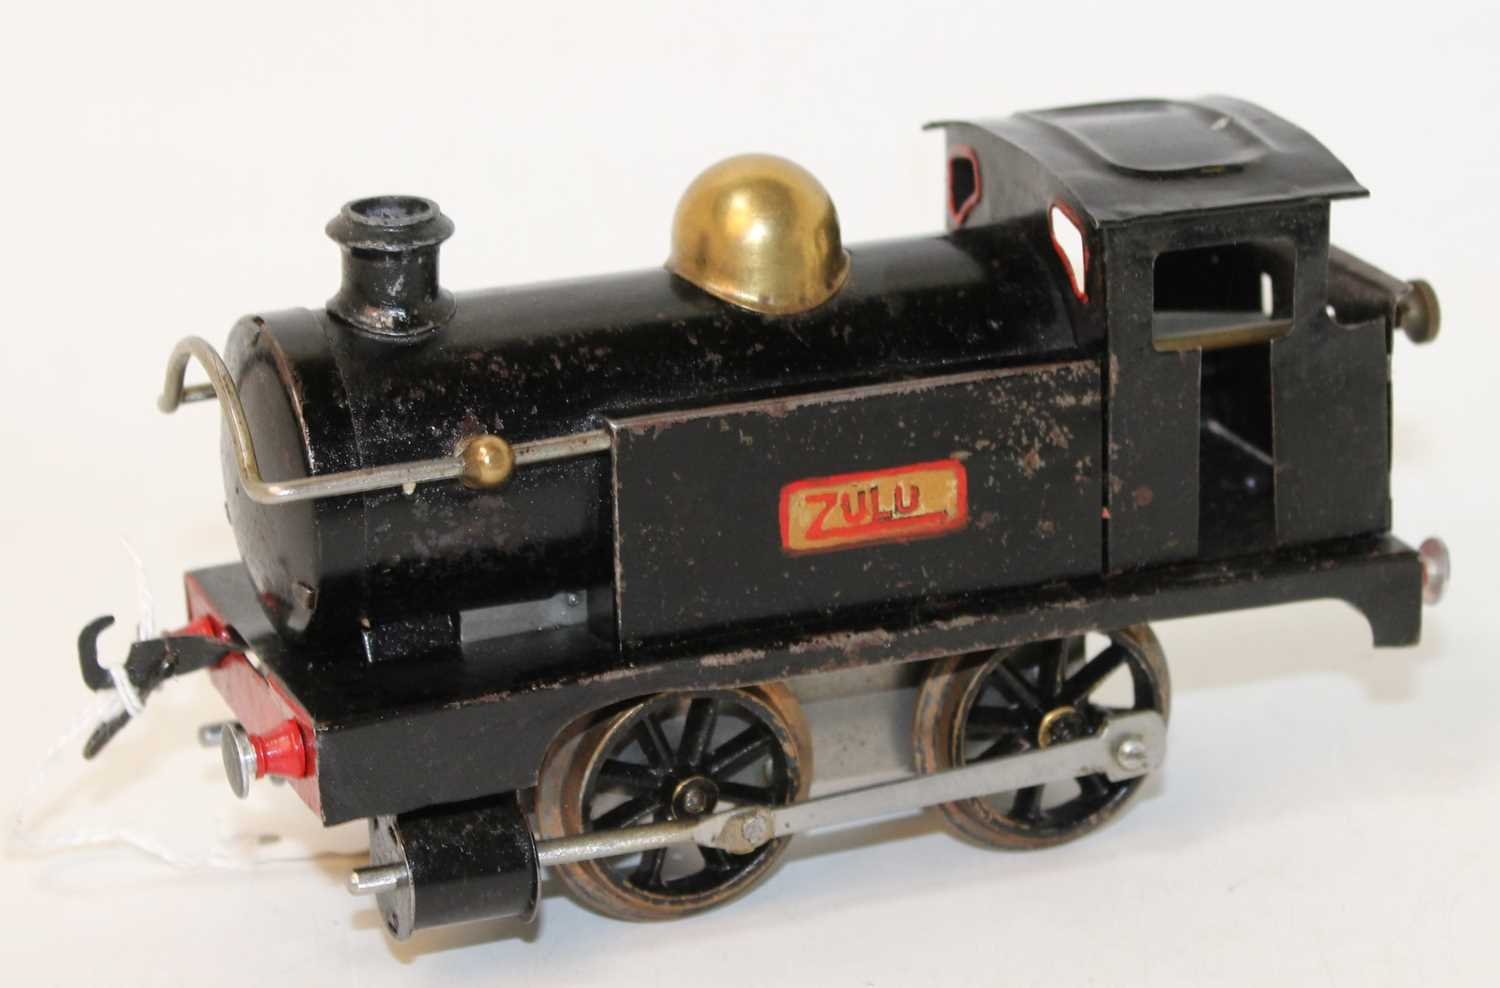 1922-3 No. 1 tank loco 'Zulu' plain black, rods painted silver, some dents and noticeable chips (